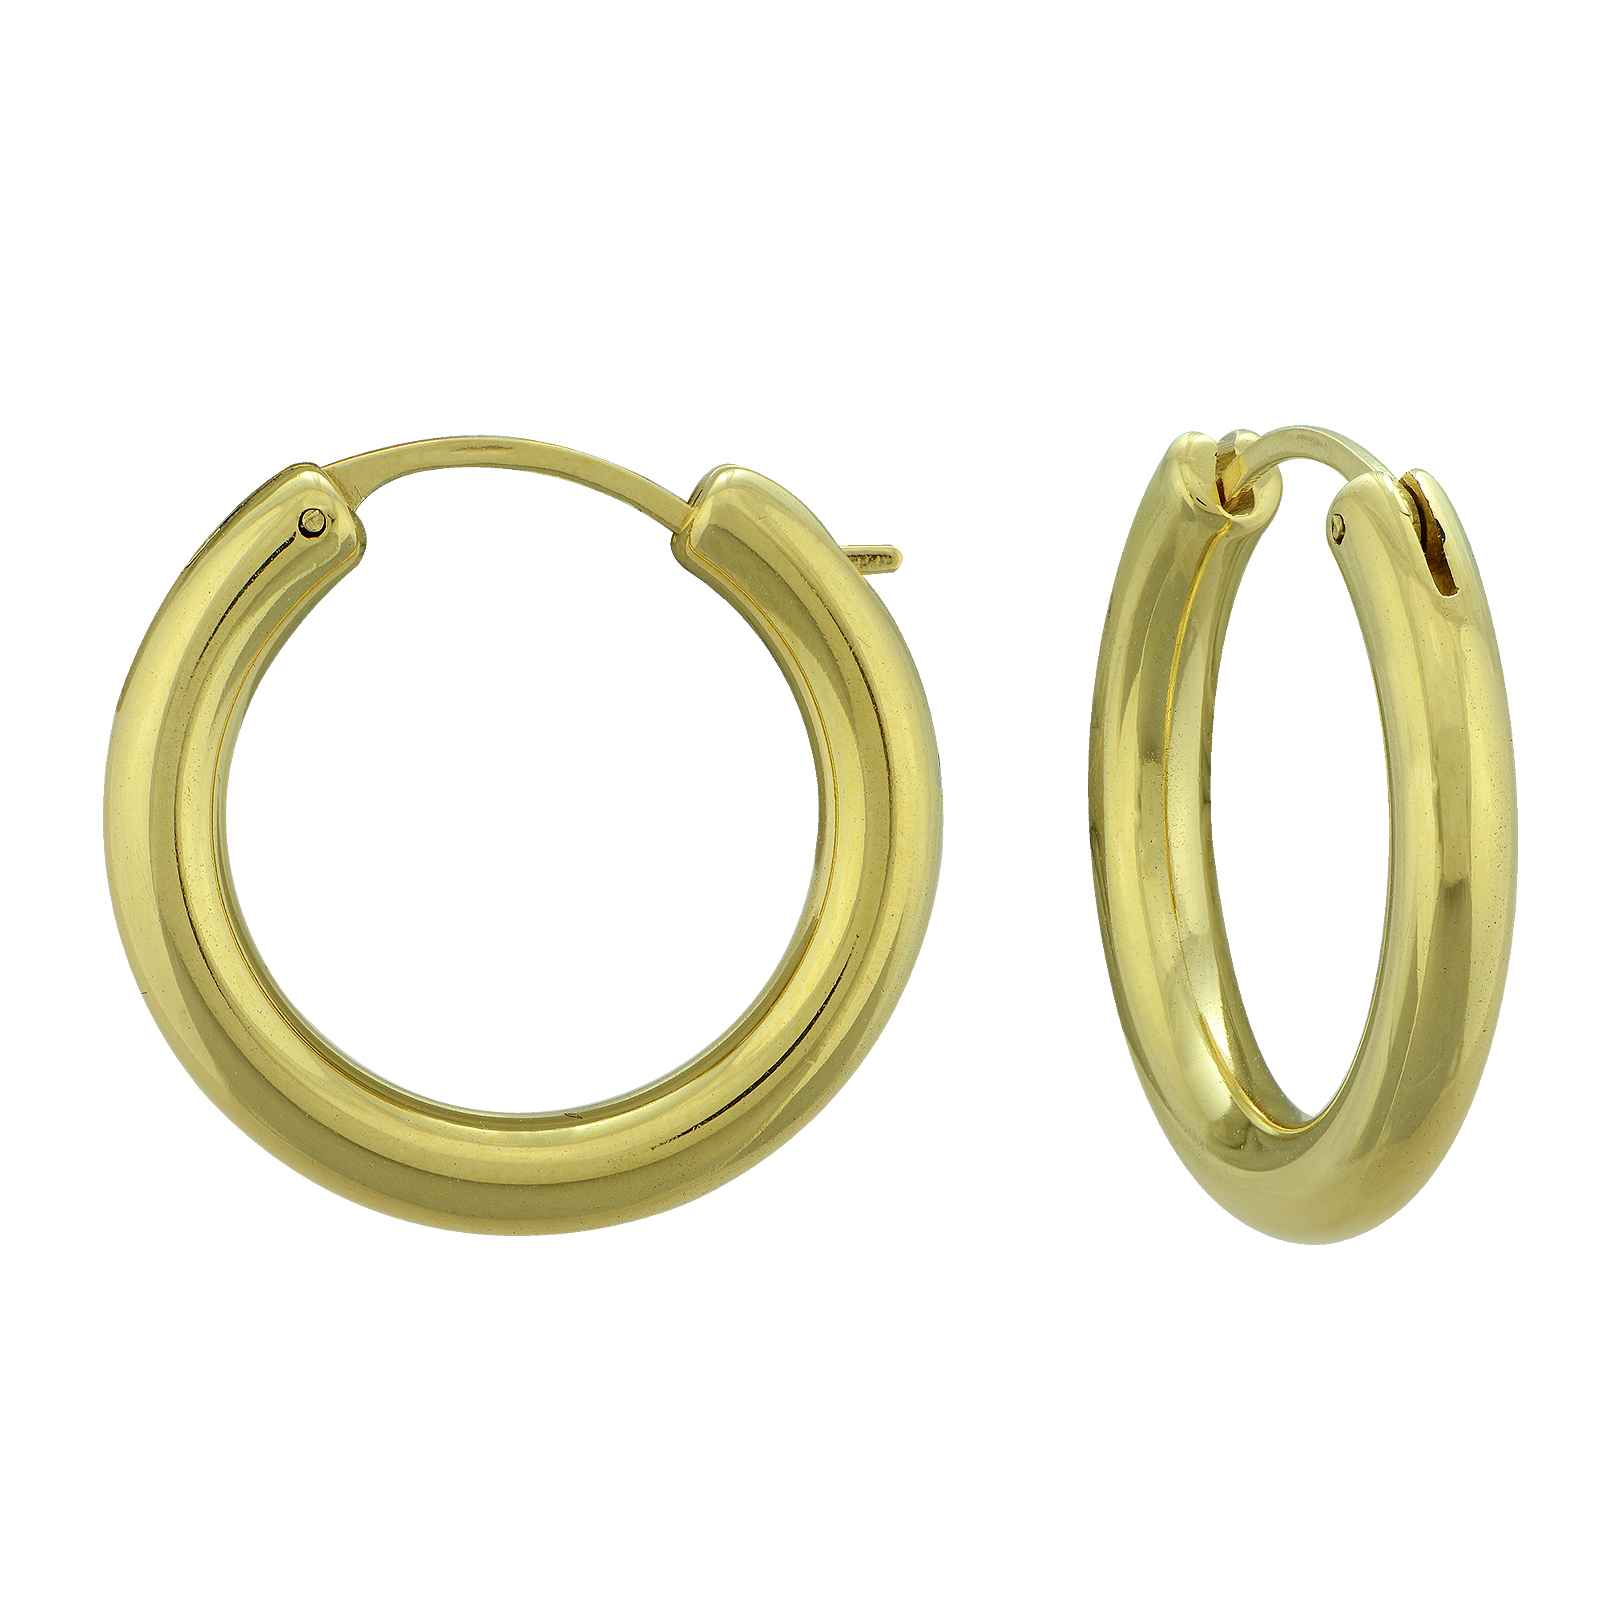 10k Gold Resin Hoop Earrings